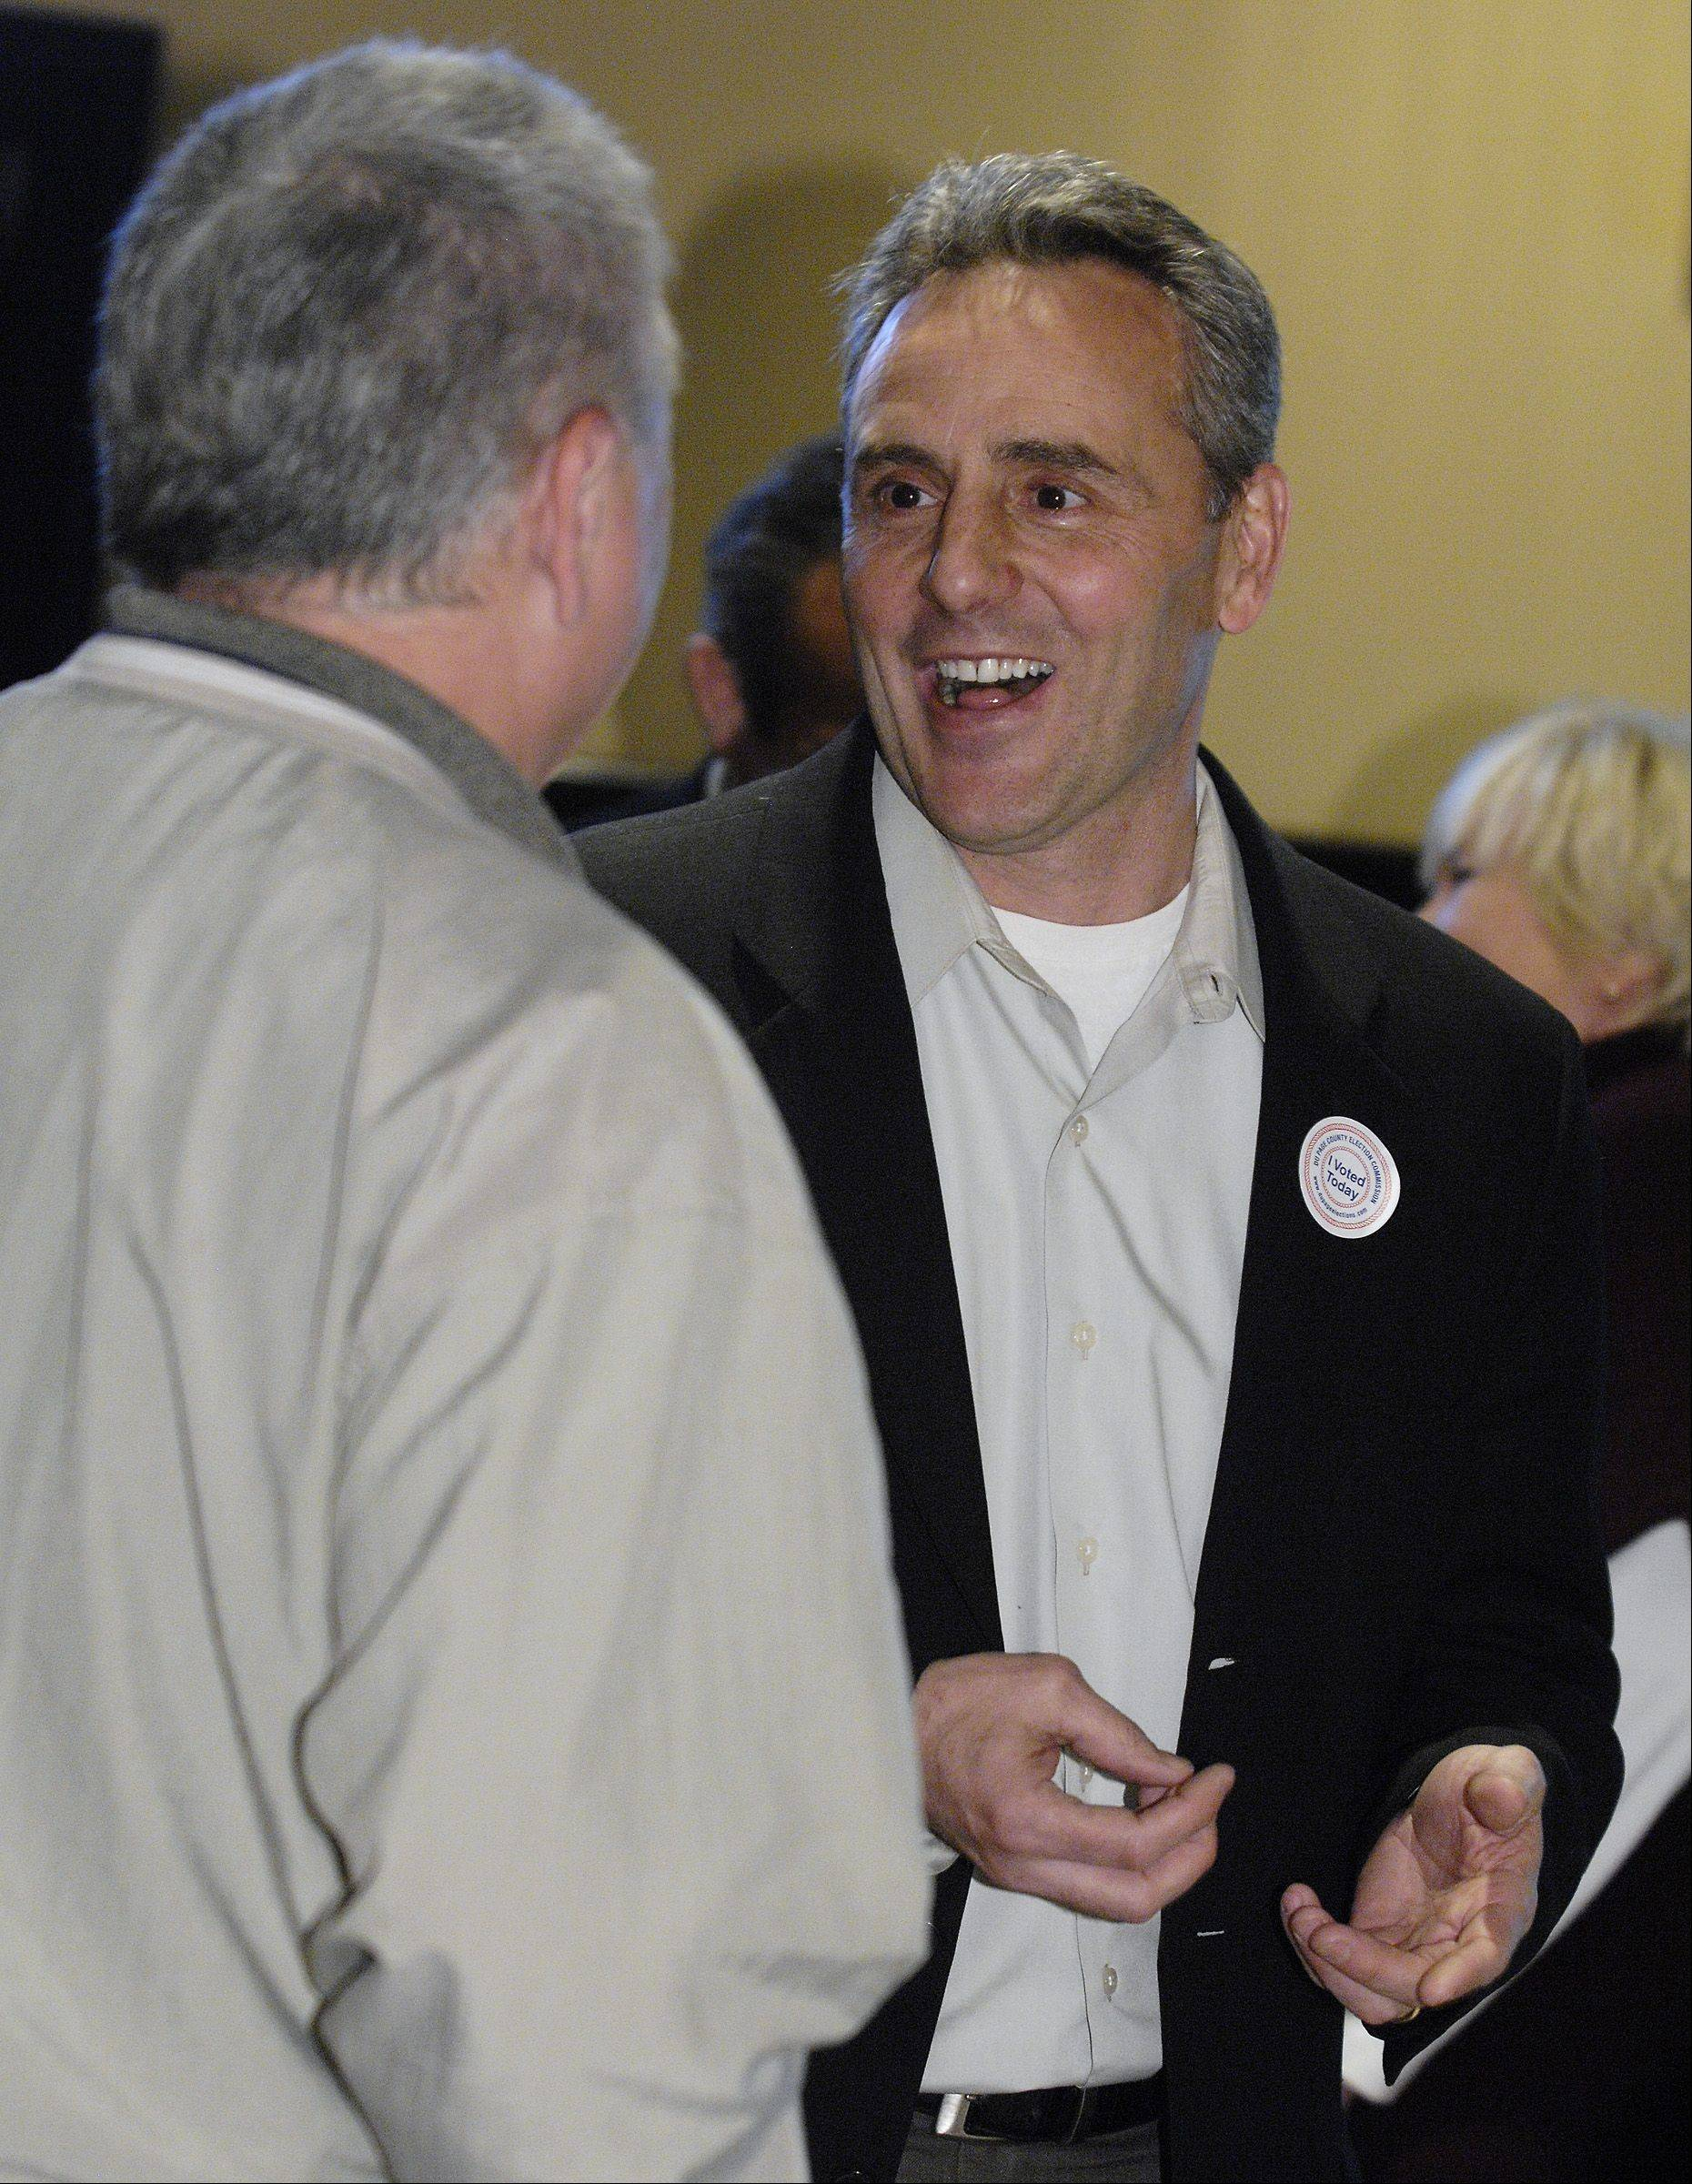 Bartlett Village President candidate Kevin Wallace talks with supporters at his election night headquarters at the Bartlett Hills Golf Club on Tuesday.